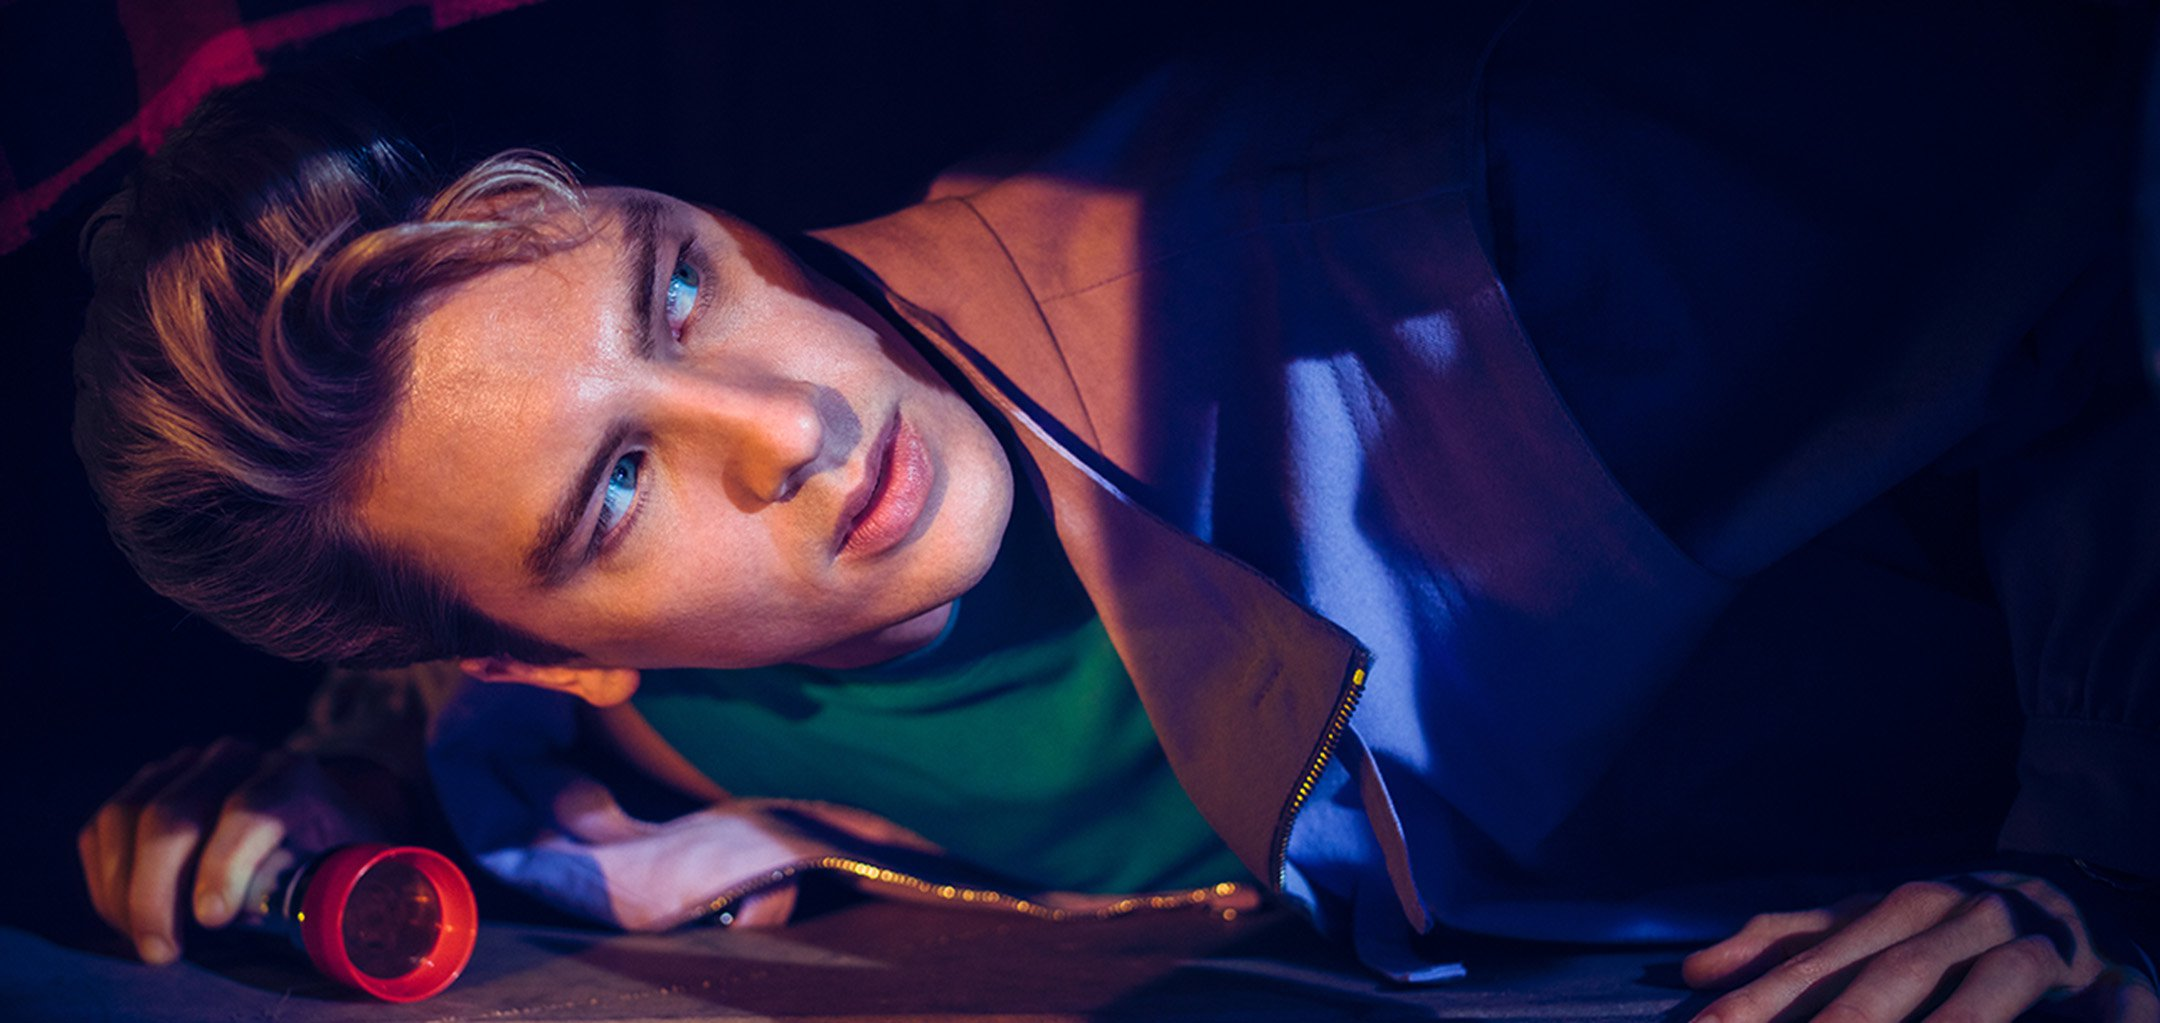 Cody Fern as Xavier Plympton checks under the bed in a still from 'American Horror Story - 1984'